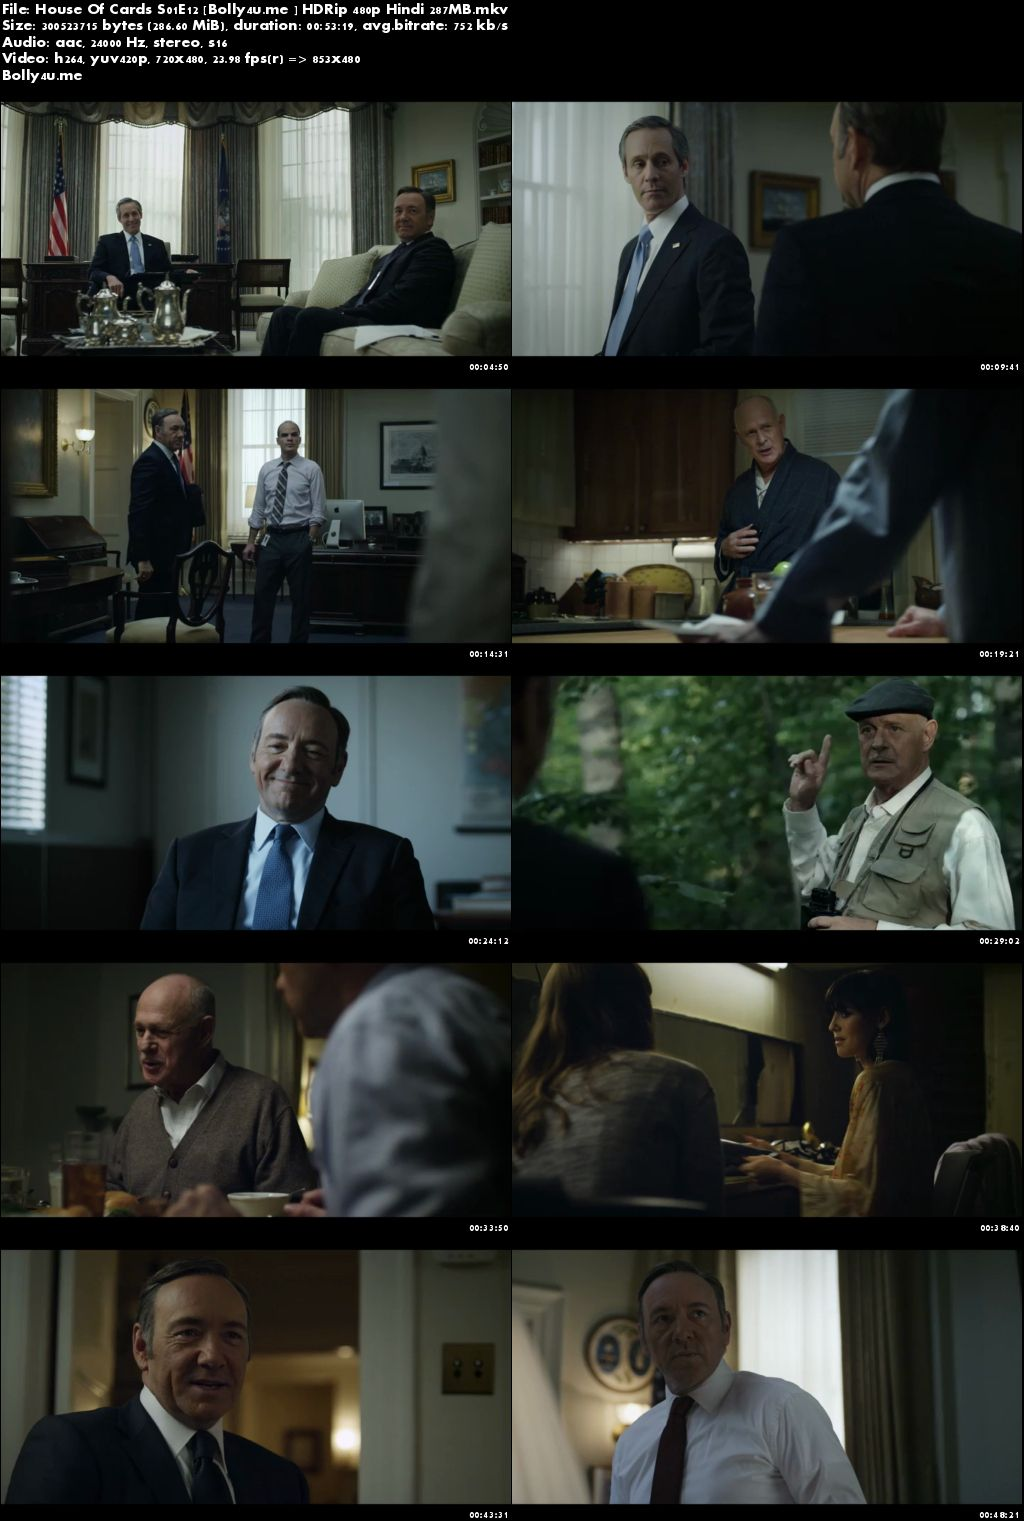 House Of Cards S01E12 HDRip 250MB Hindi Dubbed 480p Download